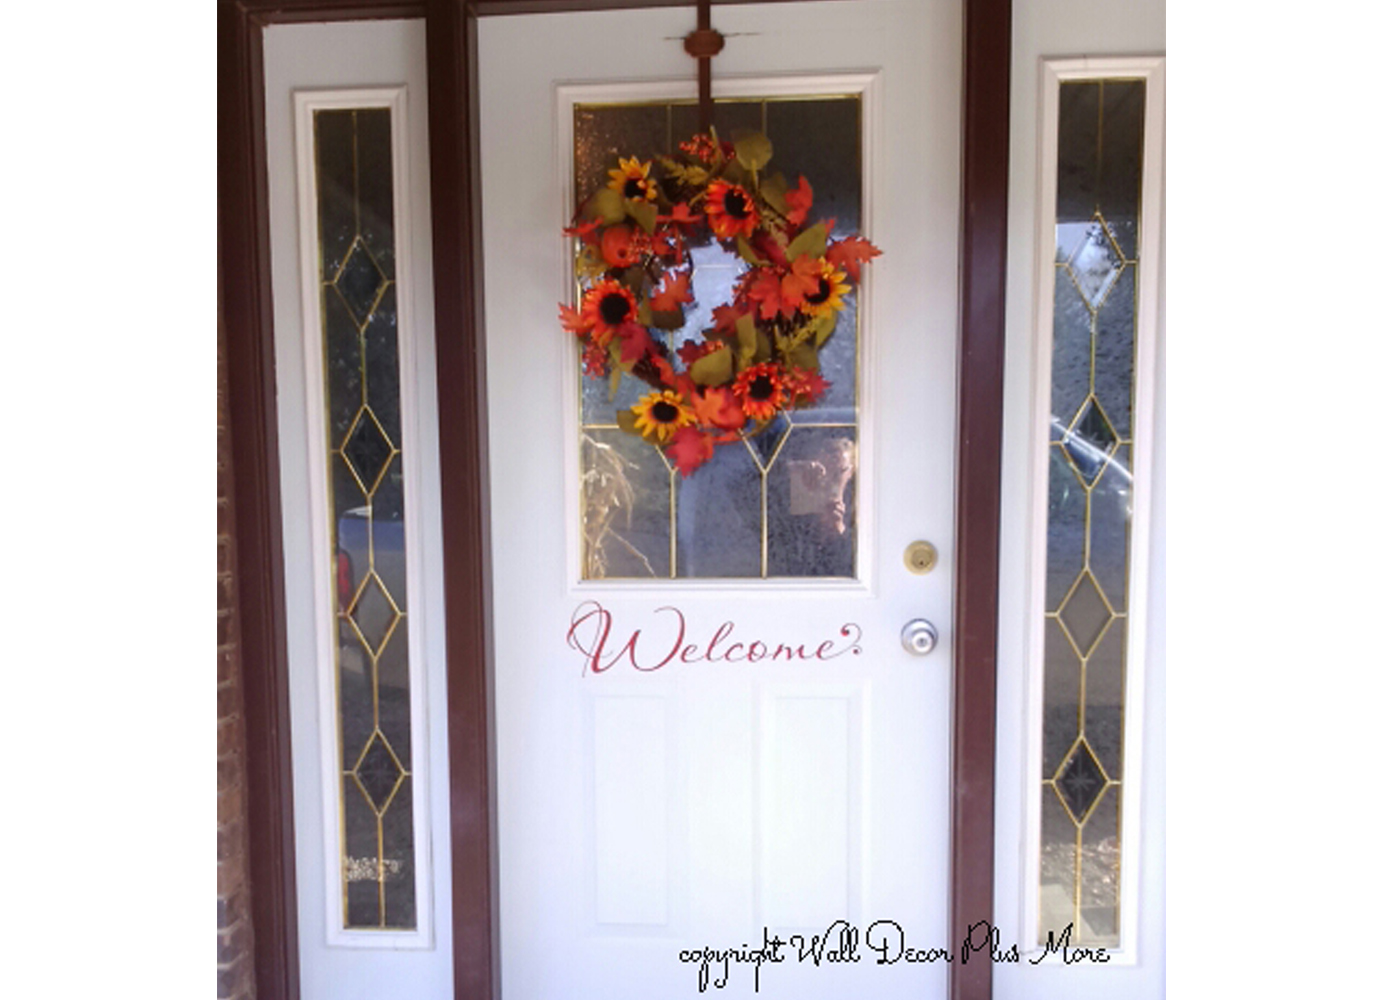 wd064-welcome-wall-decal-in-red-on-front-door.jpg